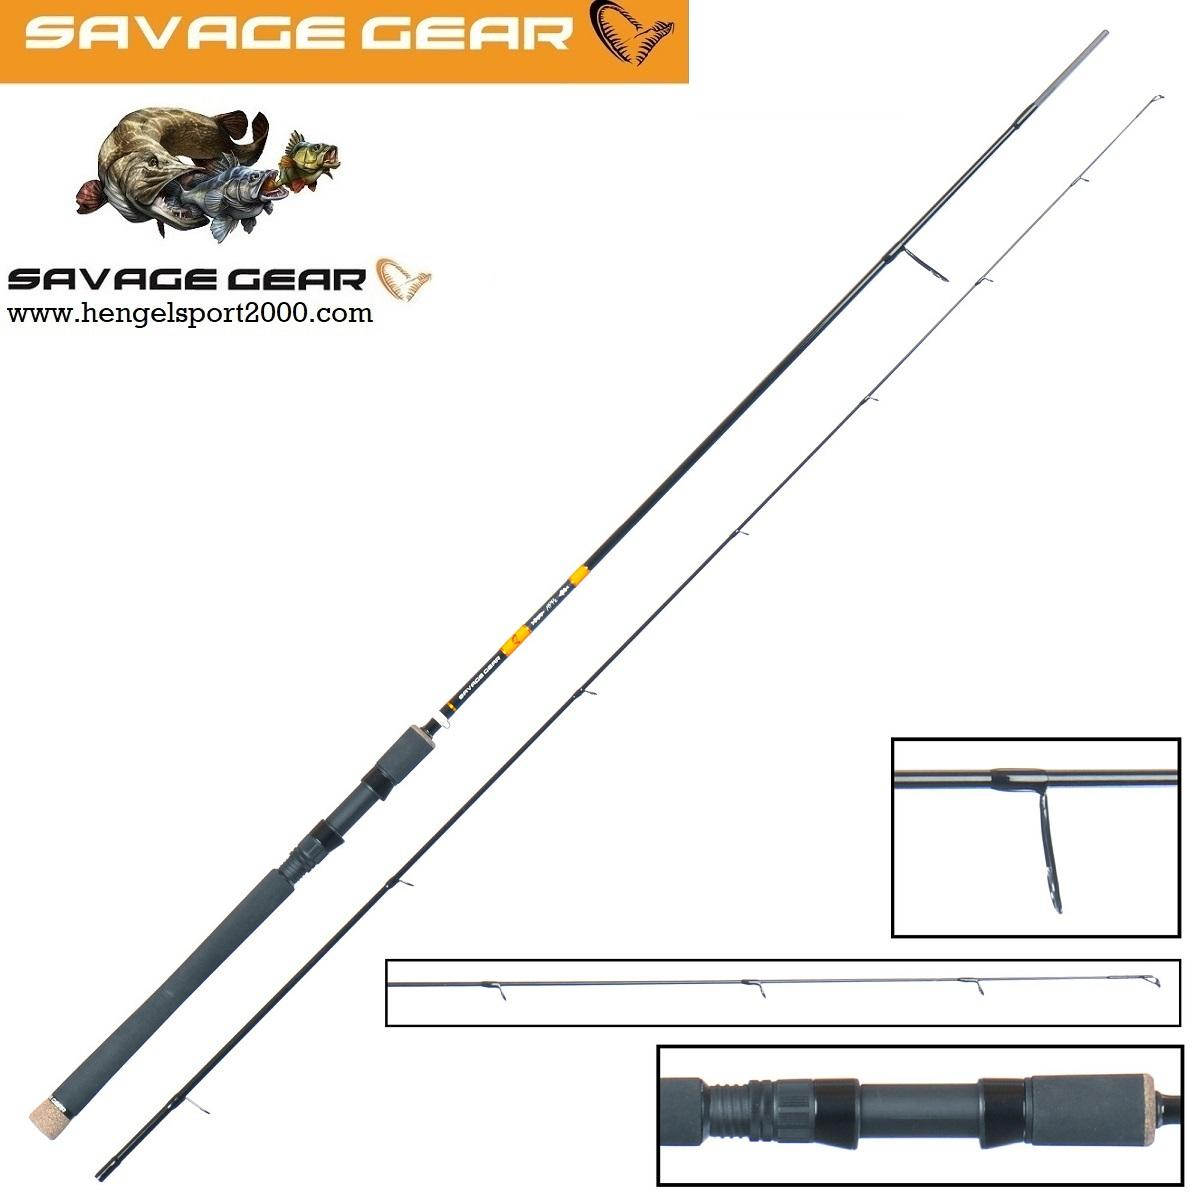 Savage Gear Multi Purpose Predator2 Spin 221 cm 70 - 100 gram